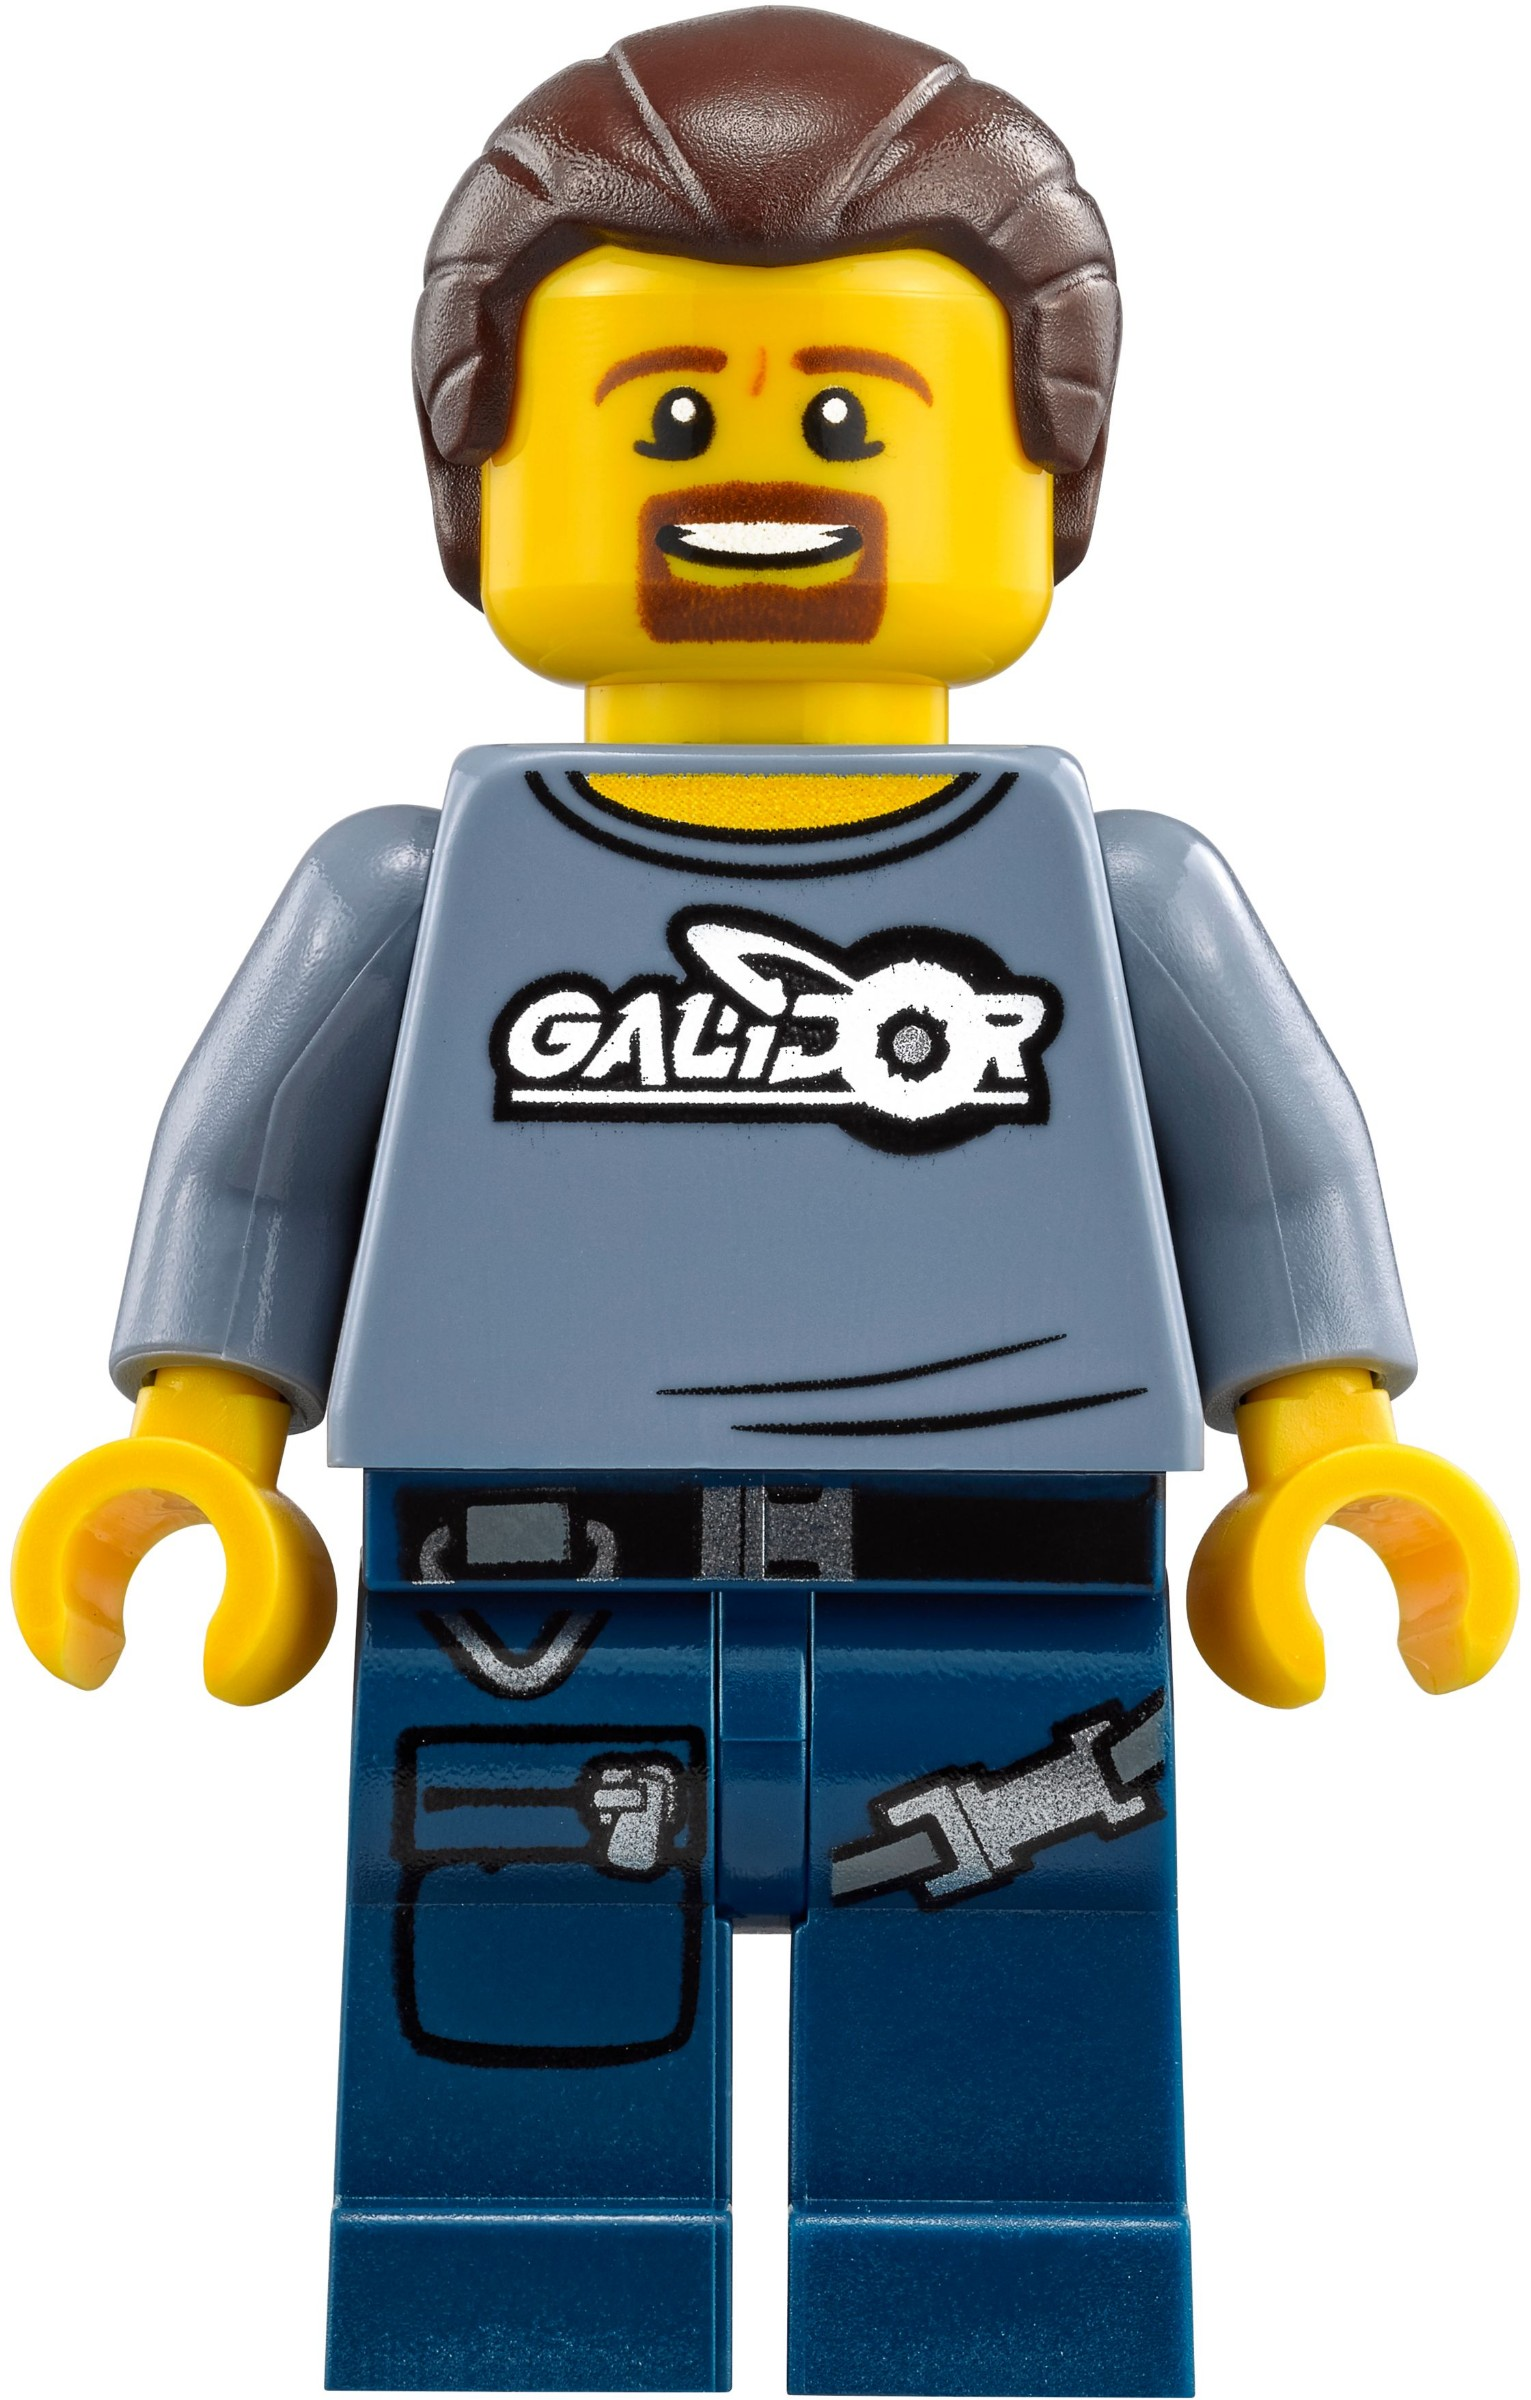 https://images.brickset.com/sets/AdditionalImages/70620-1/70620_alt24.jpg